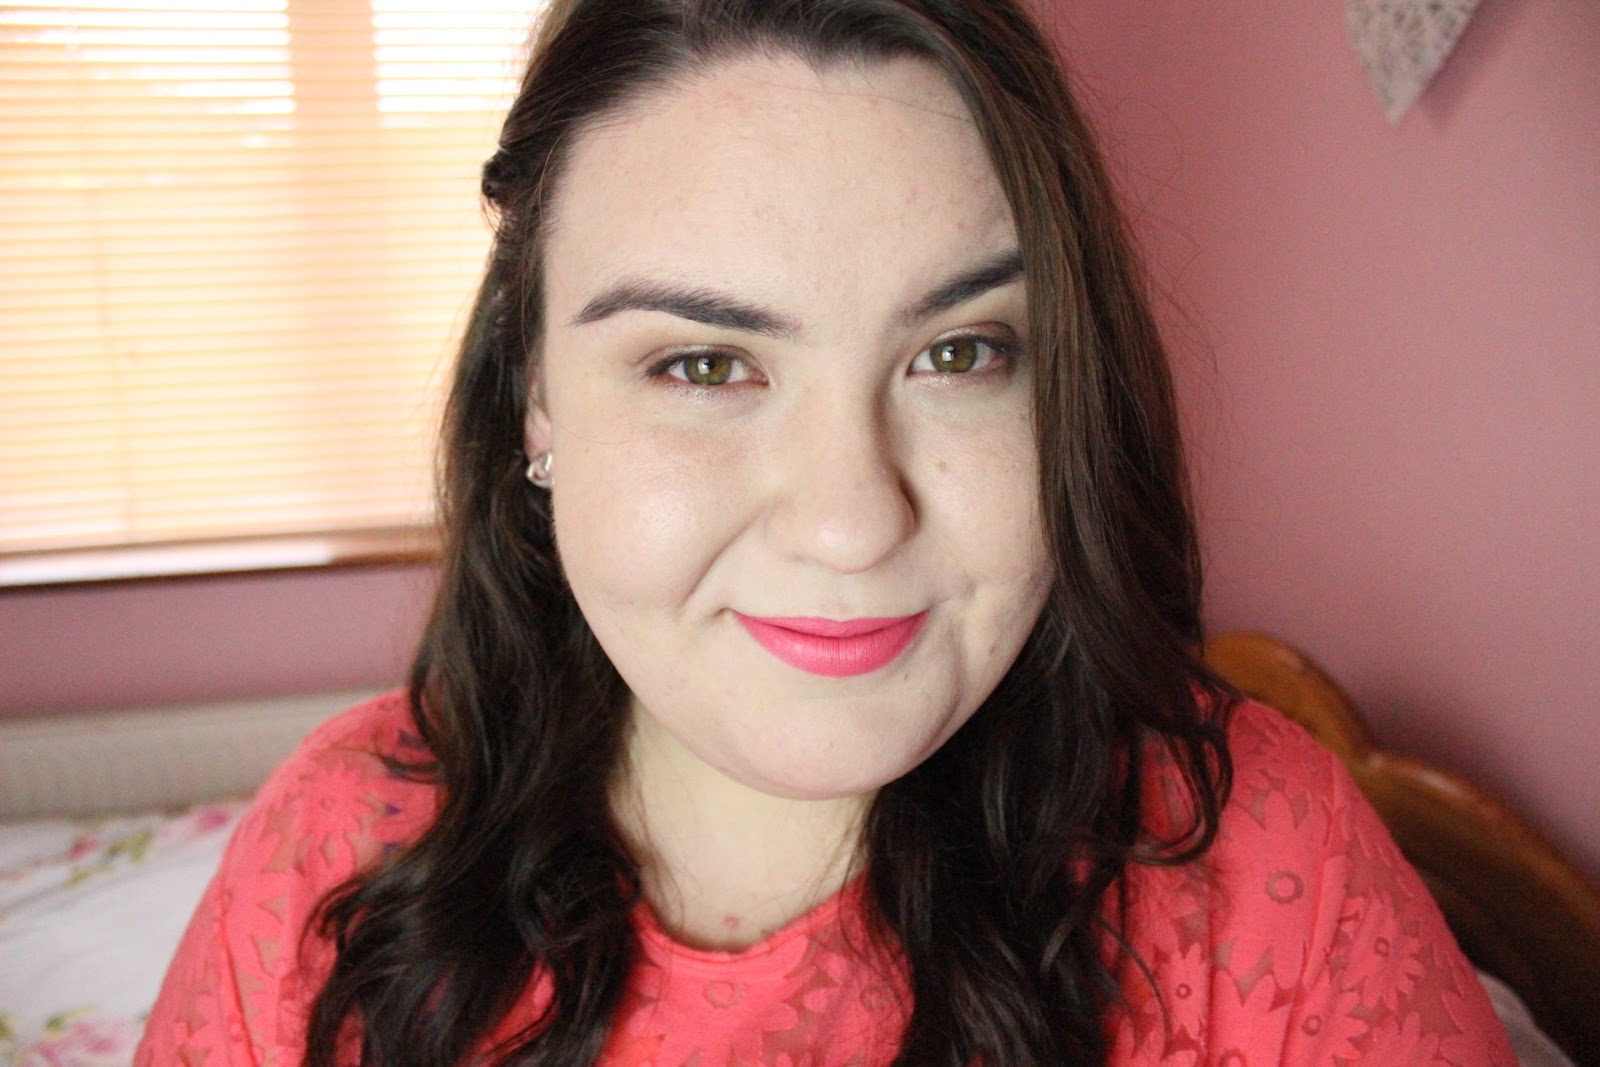 Get Ready With Me: Engagement Party